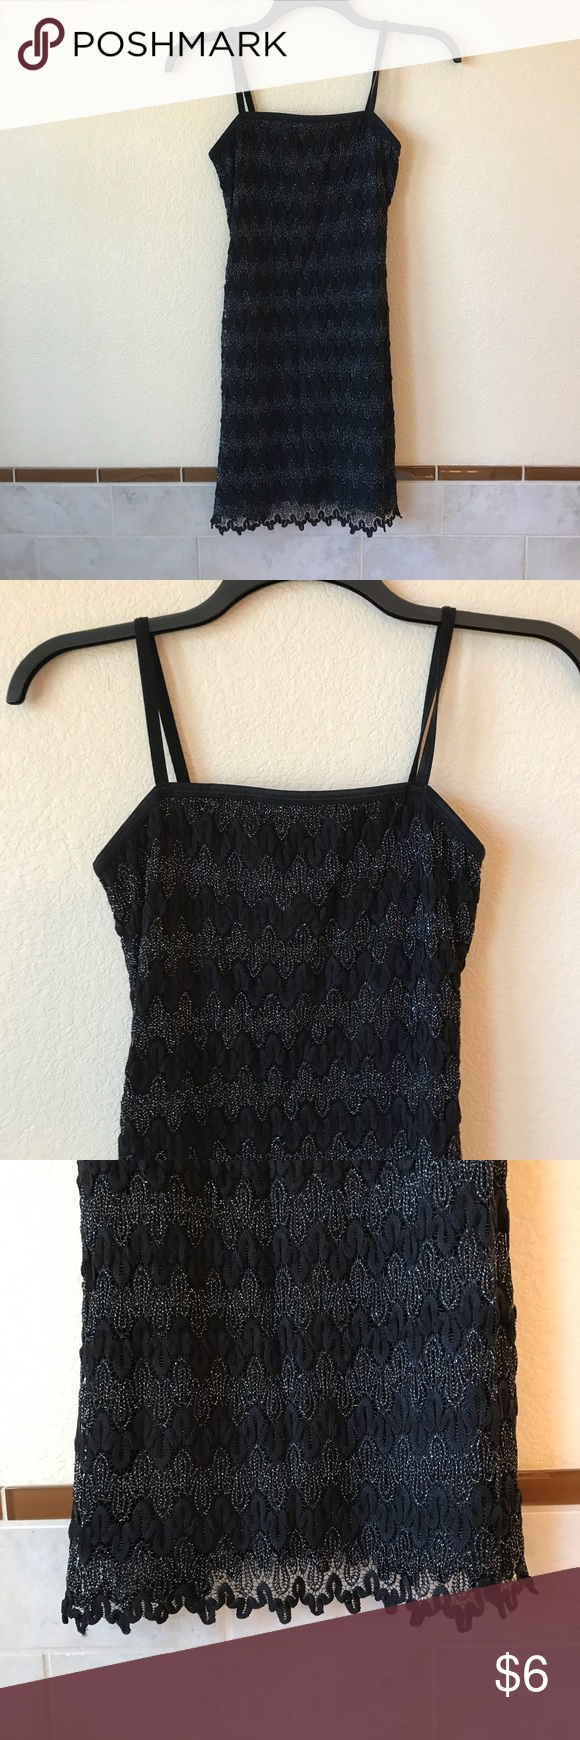 Womens Black Sparkle Sleeveless Dress Stretch Very Good Used Condition ~ No Stains or Holes Pullover Dress ~ Non-Adjustable Elastic Spaghetti Straps Stretch Material ~ Fully Lined ~ Lacy Bottom Hem  Silver Metallic Stitching ~ USA Made